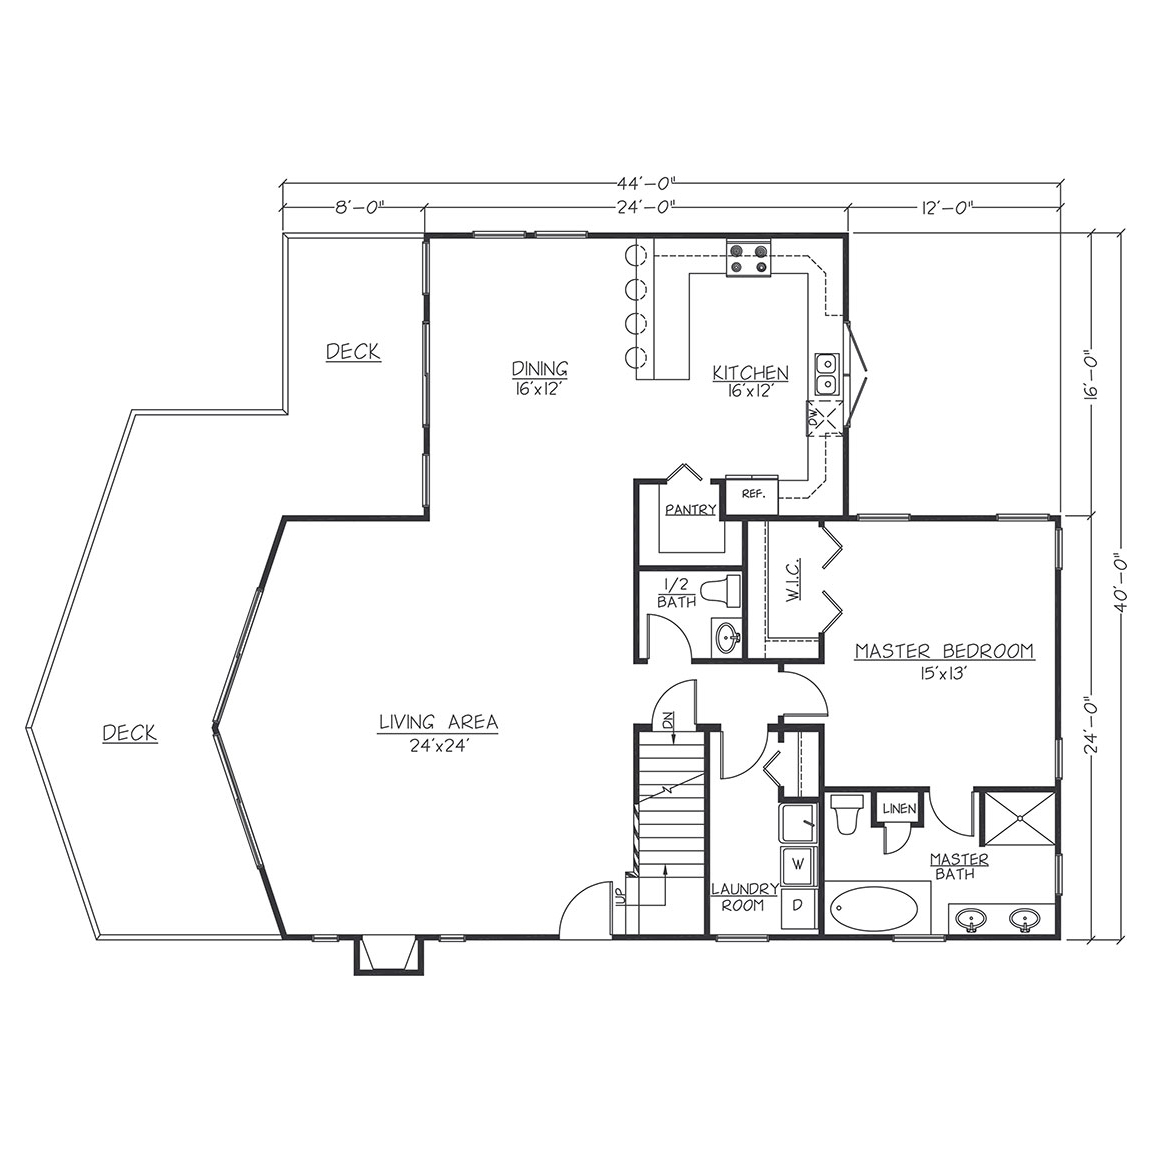 #5  MAIN FLOOR 24x44 with WingTotal Sq. Ft.= 2272